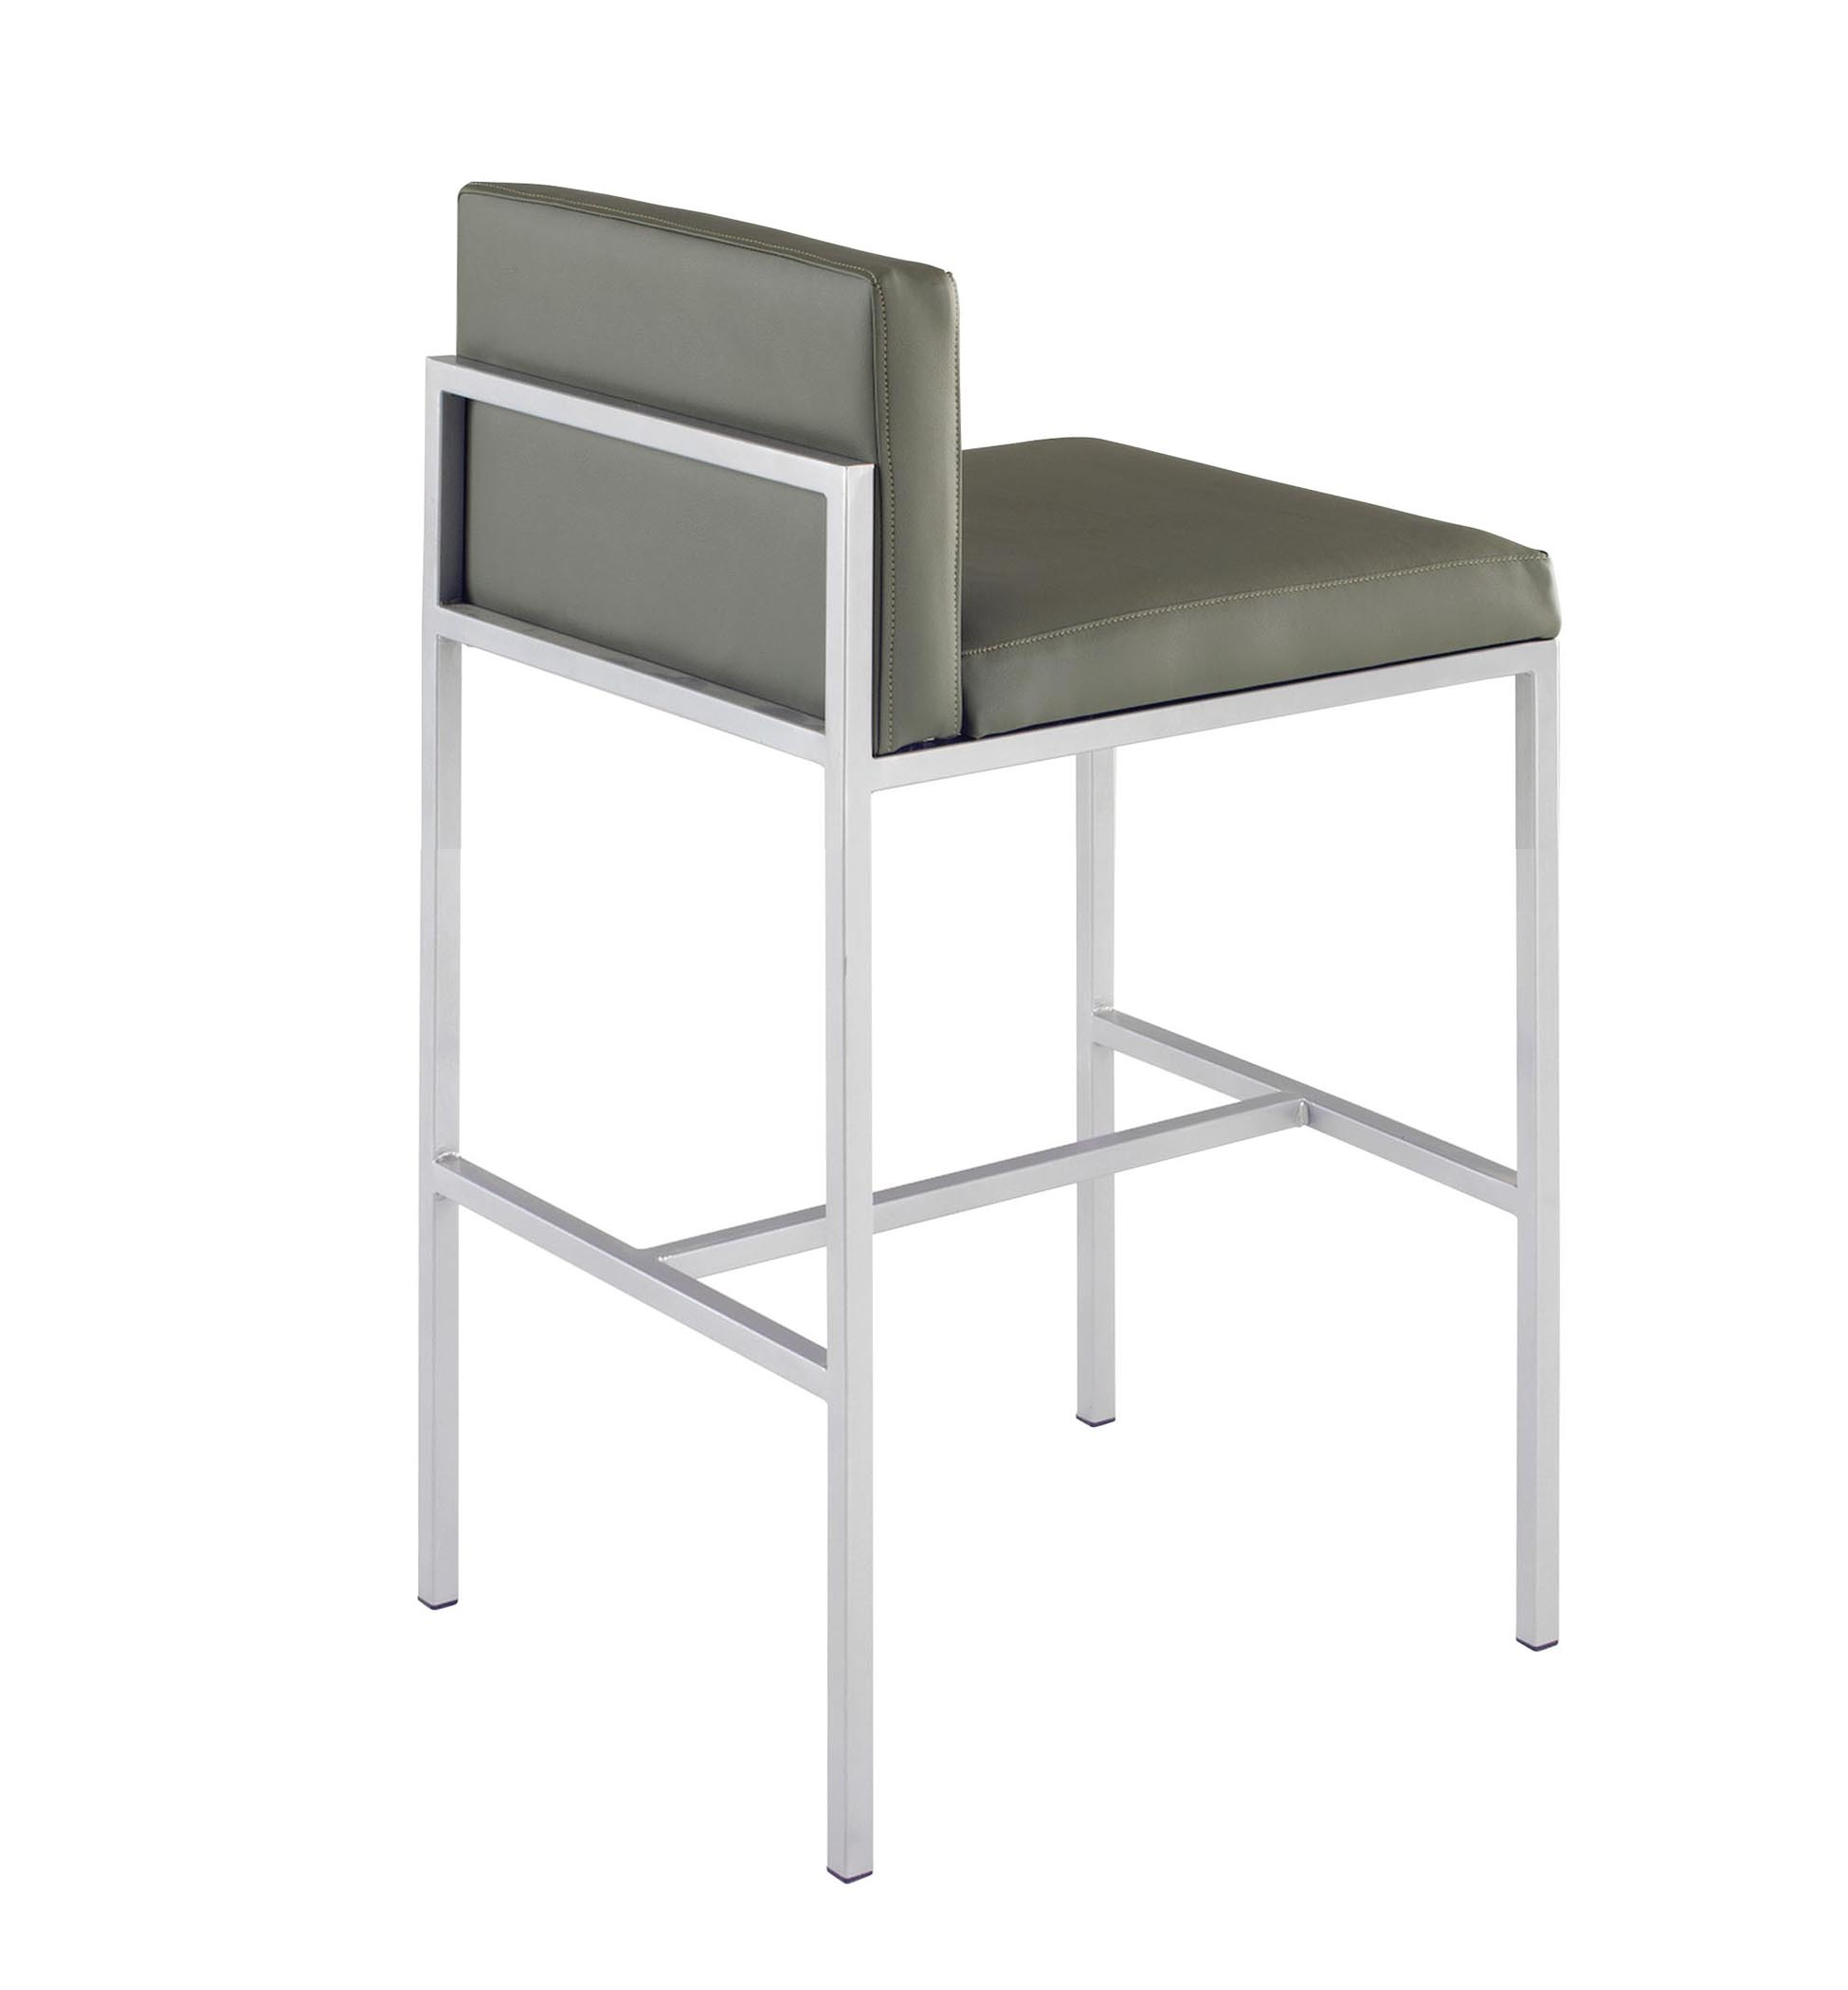 share metal stool seating bar comida favorites hi products barstool res low print